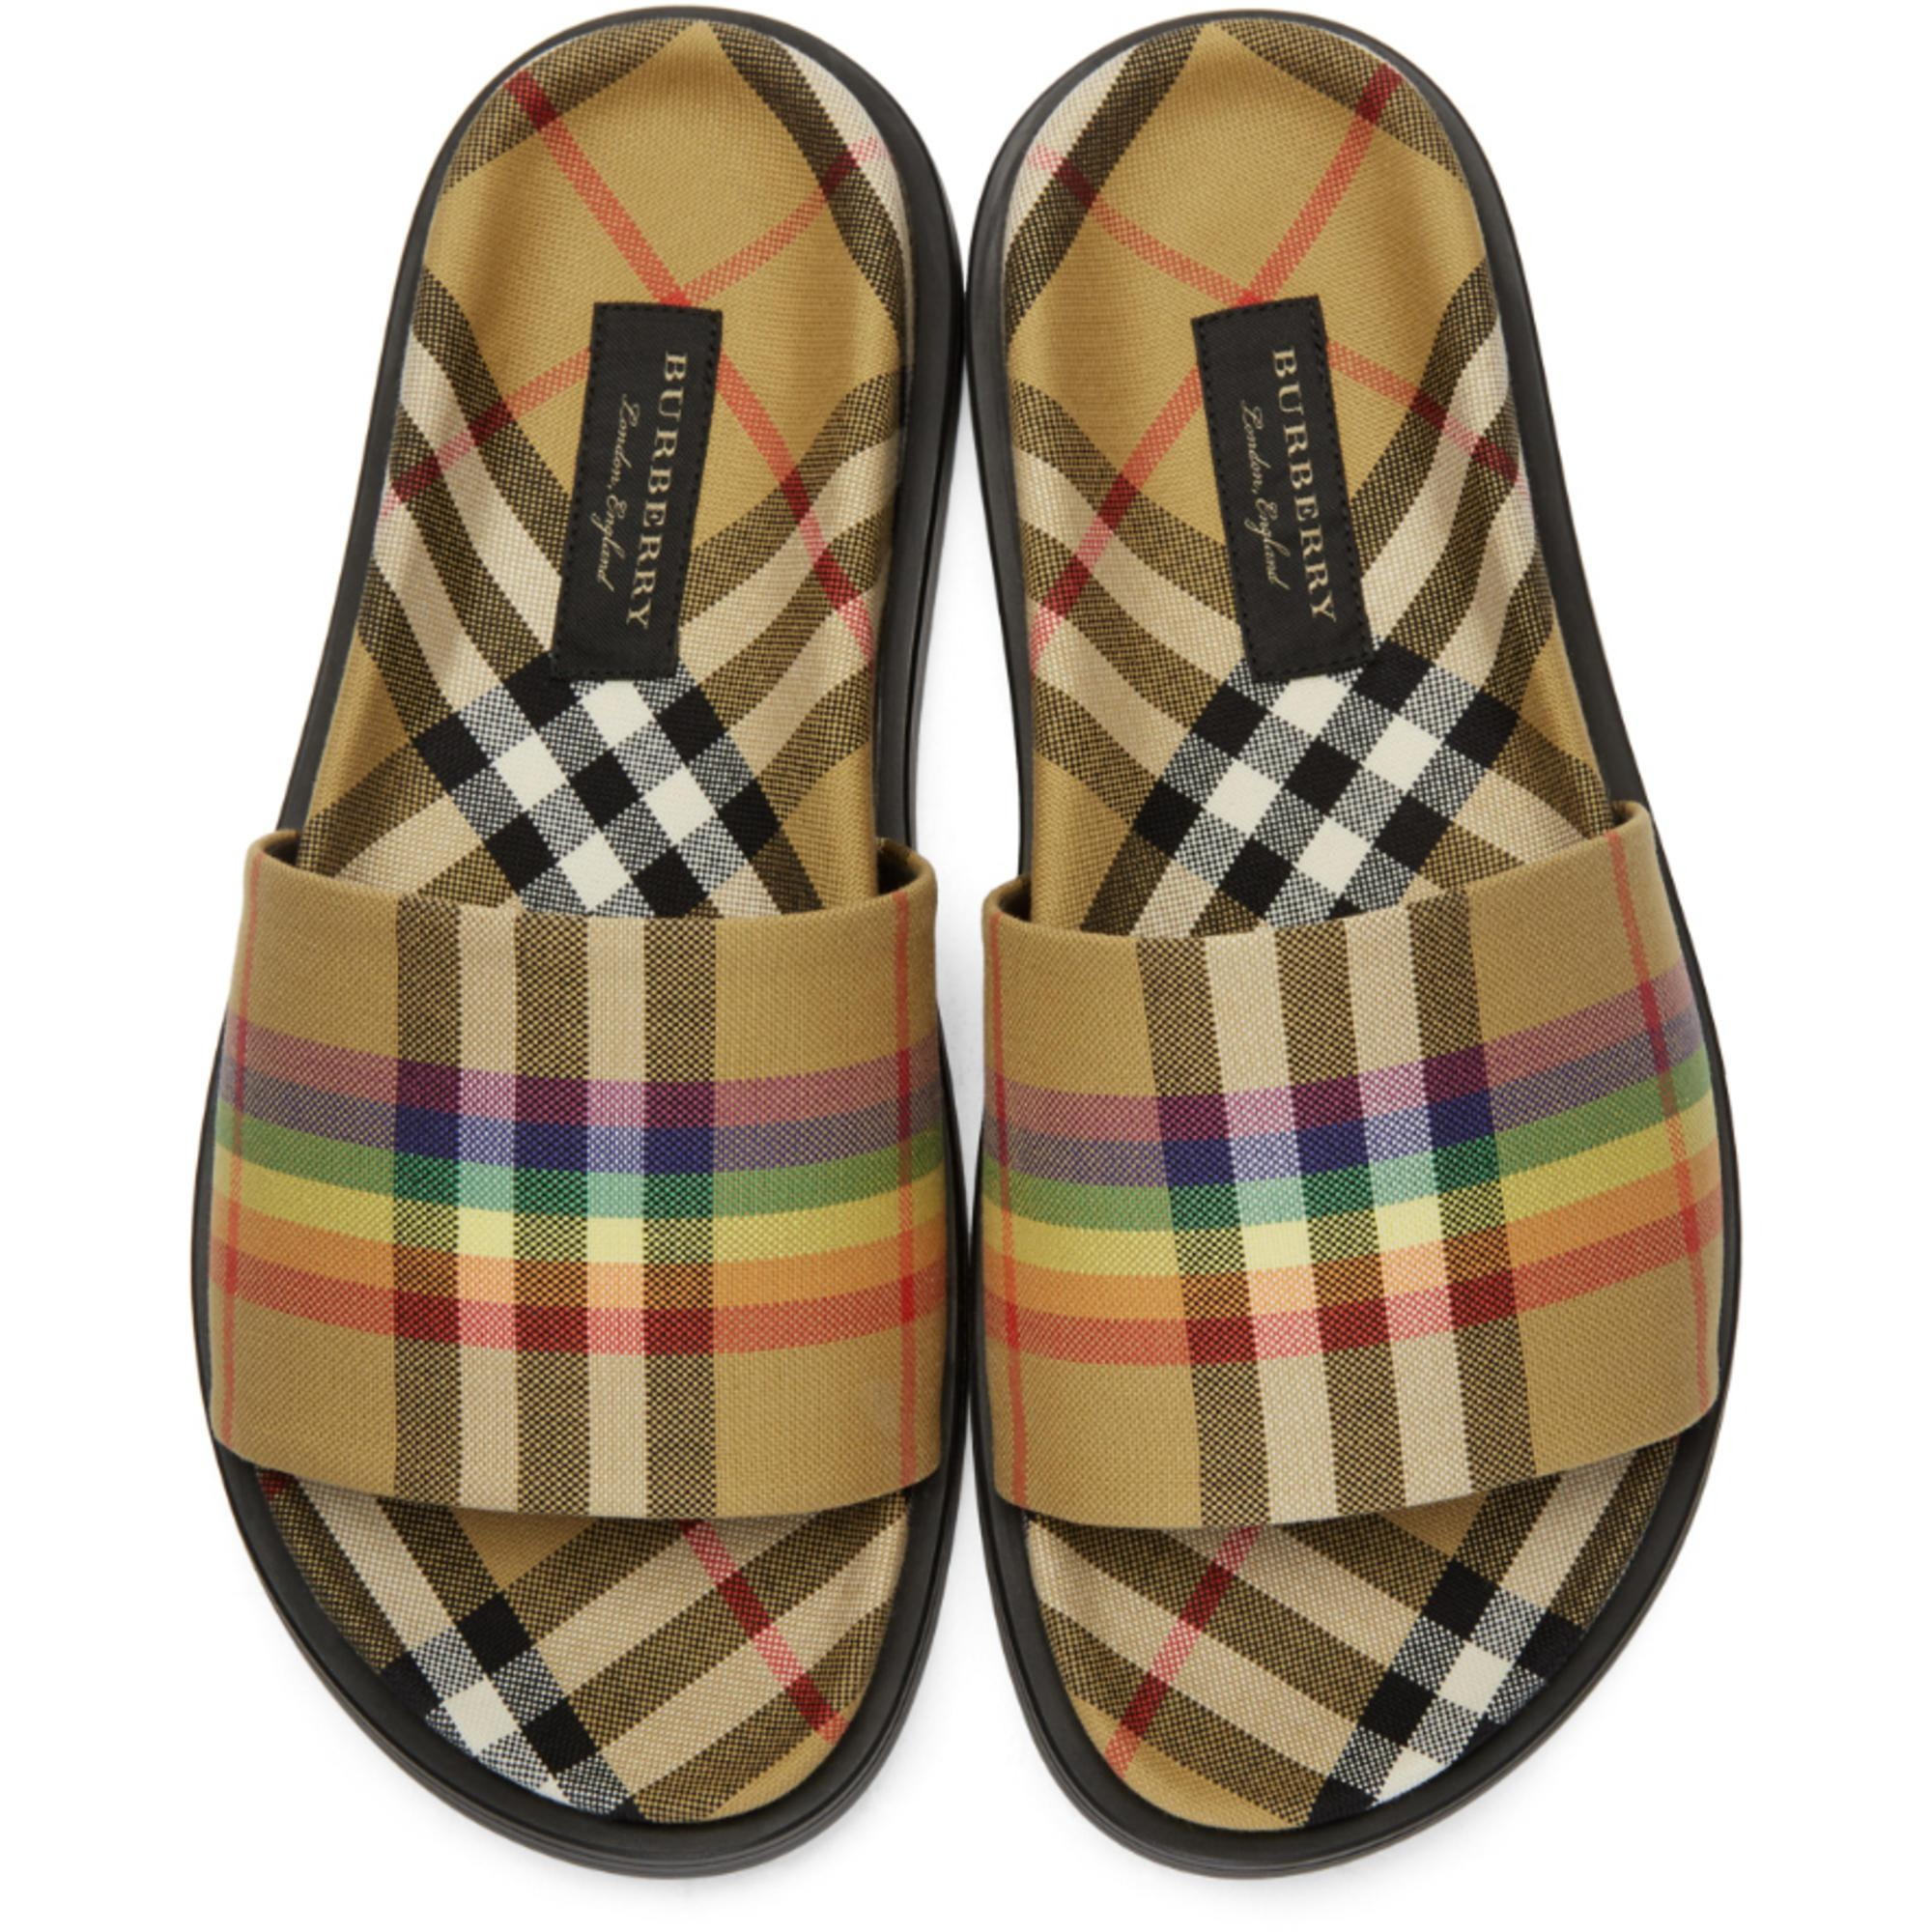 951d71831ea Lyst - Burberry Yellow Check Rainbow Slides in Yellow